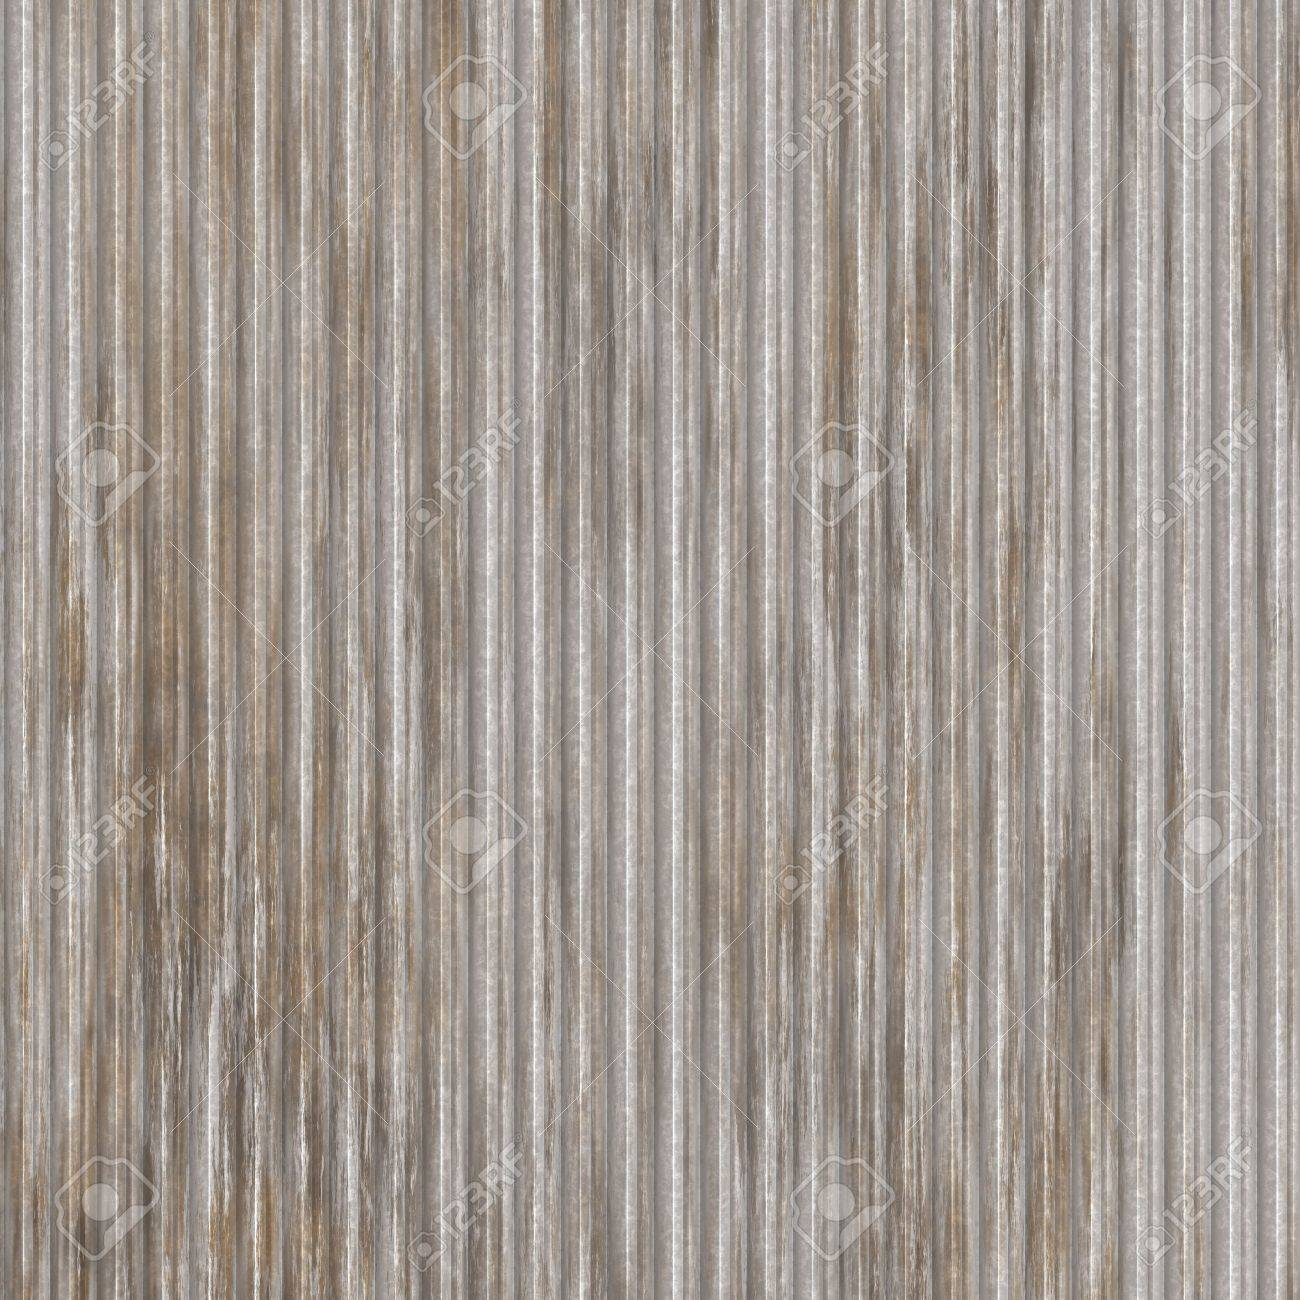 Corrugated metal surface with corrosion texture seamless background  illustration Stock Illustration   3445951. Corrugated Metal Surface With Corrosion Texture Seamless